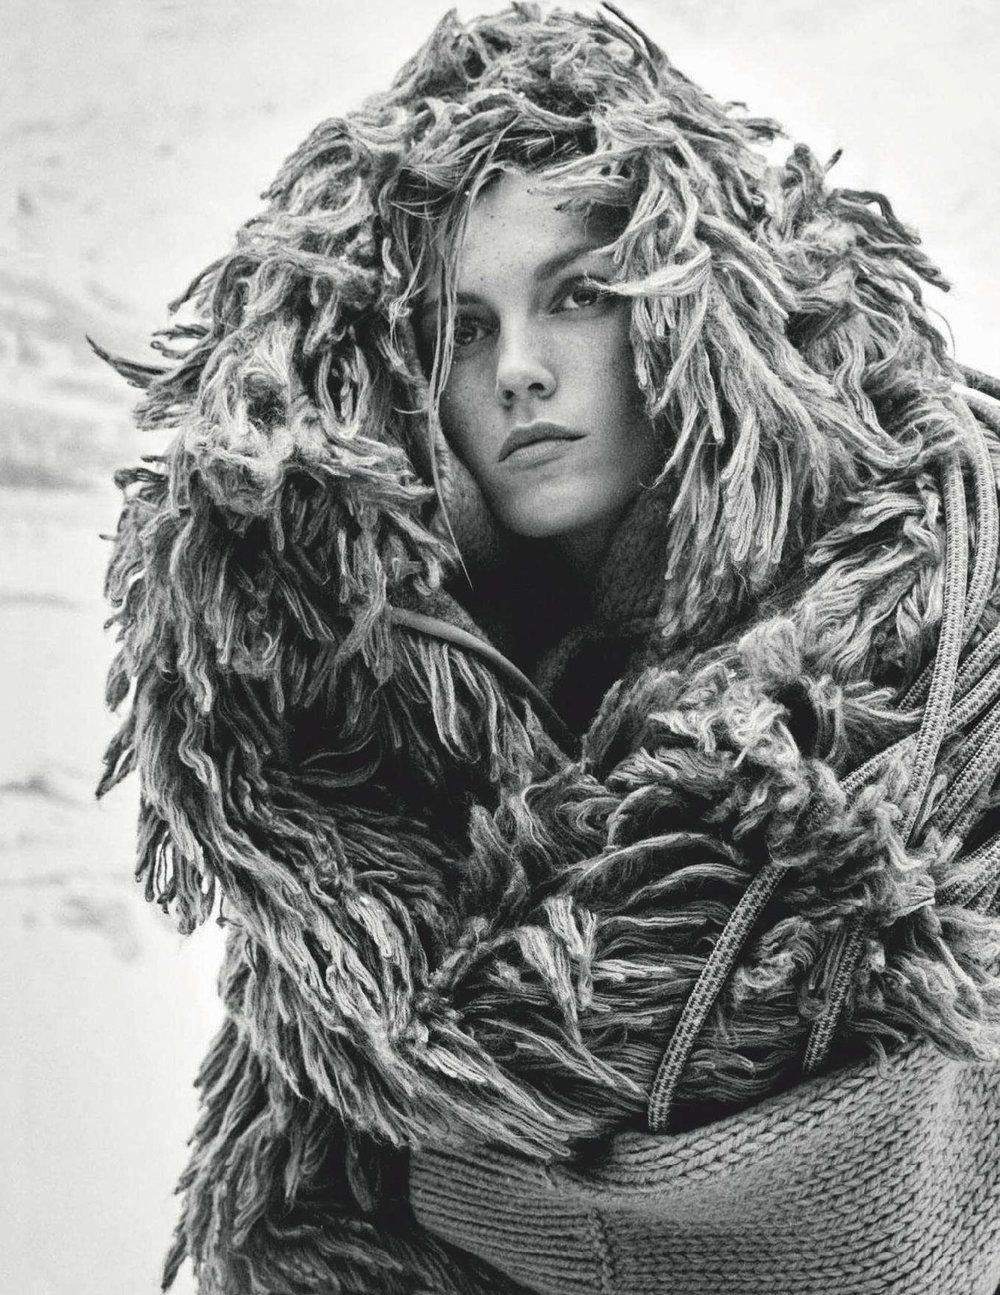 Anja Rubik by Giampaolo Sgura for Vogue Germany Dec 2018 (15).jpg